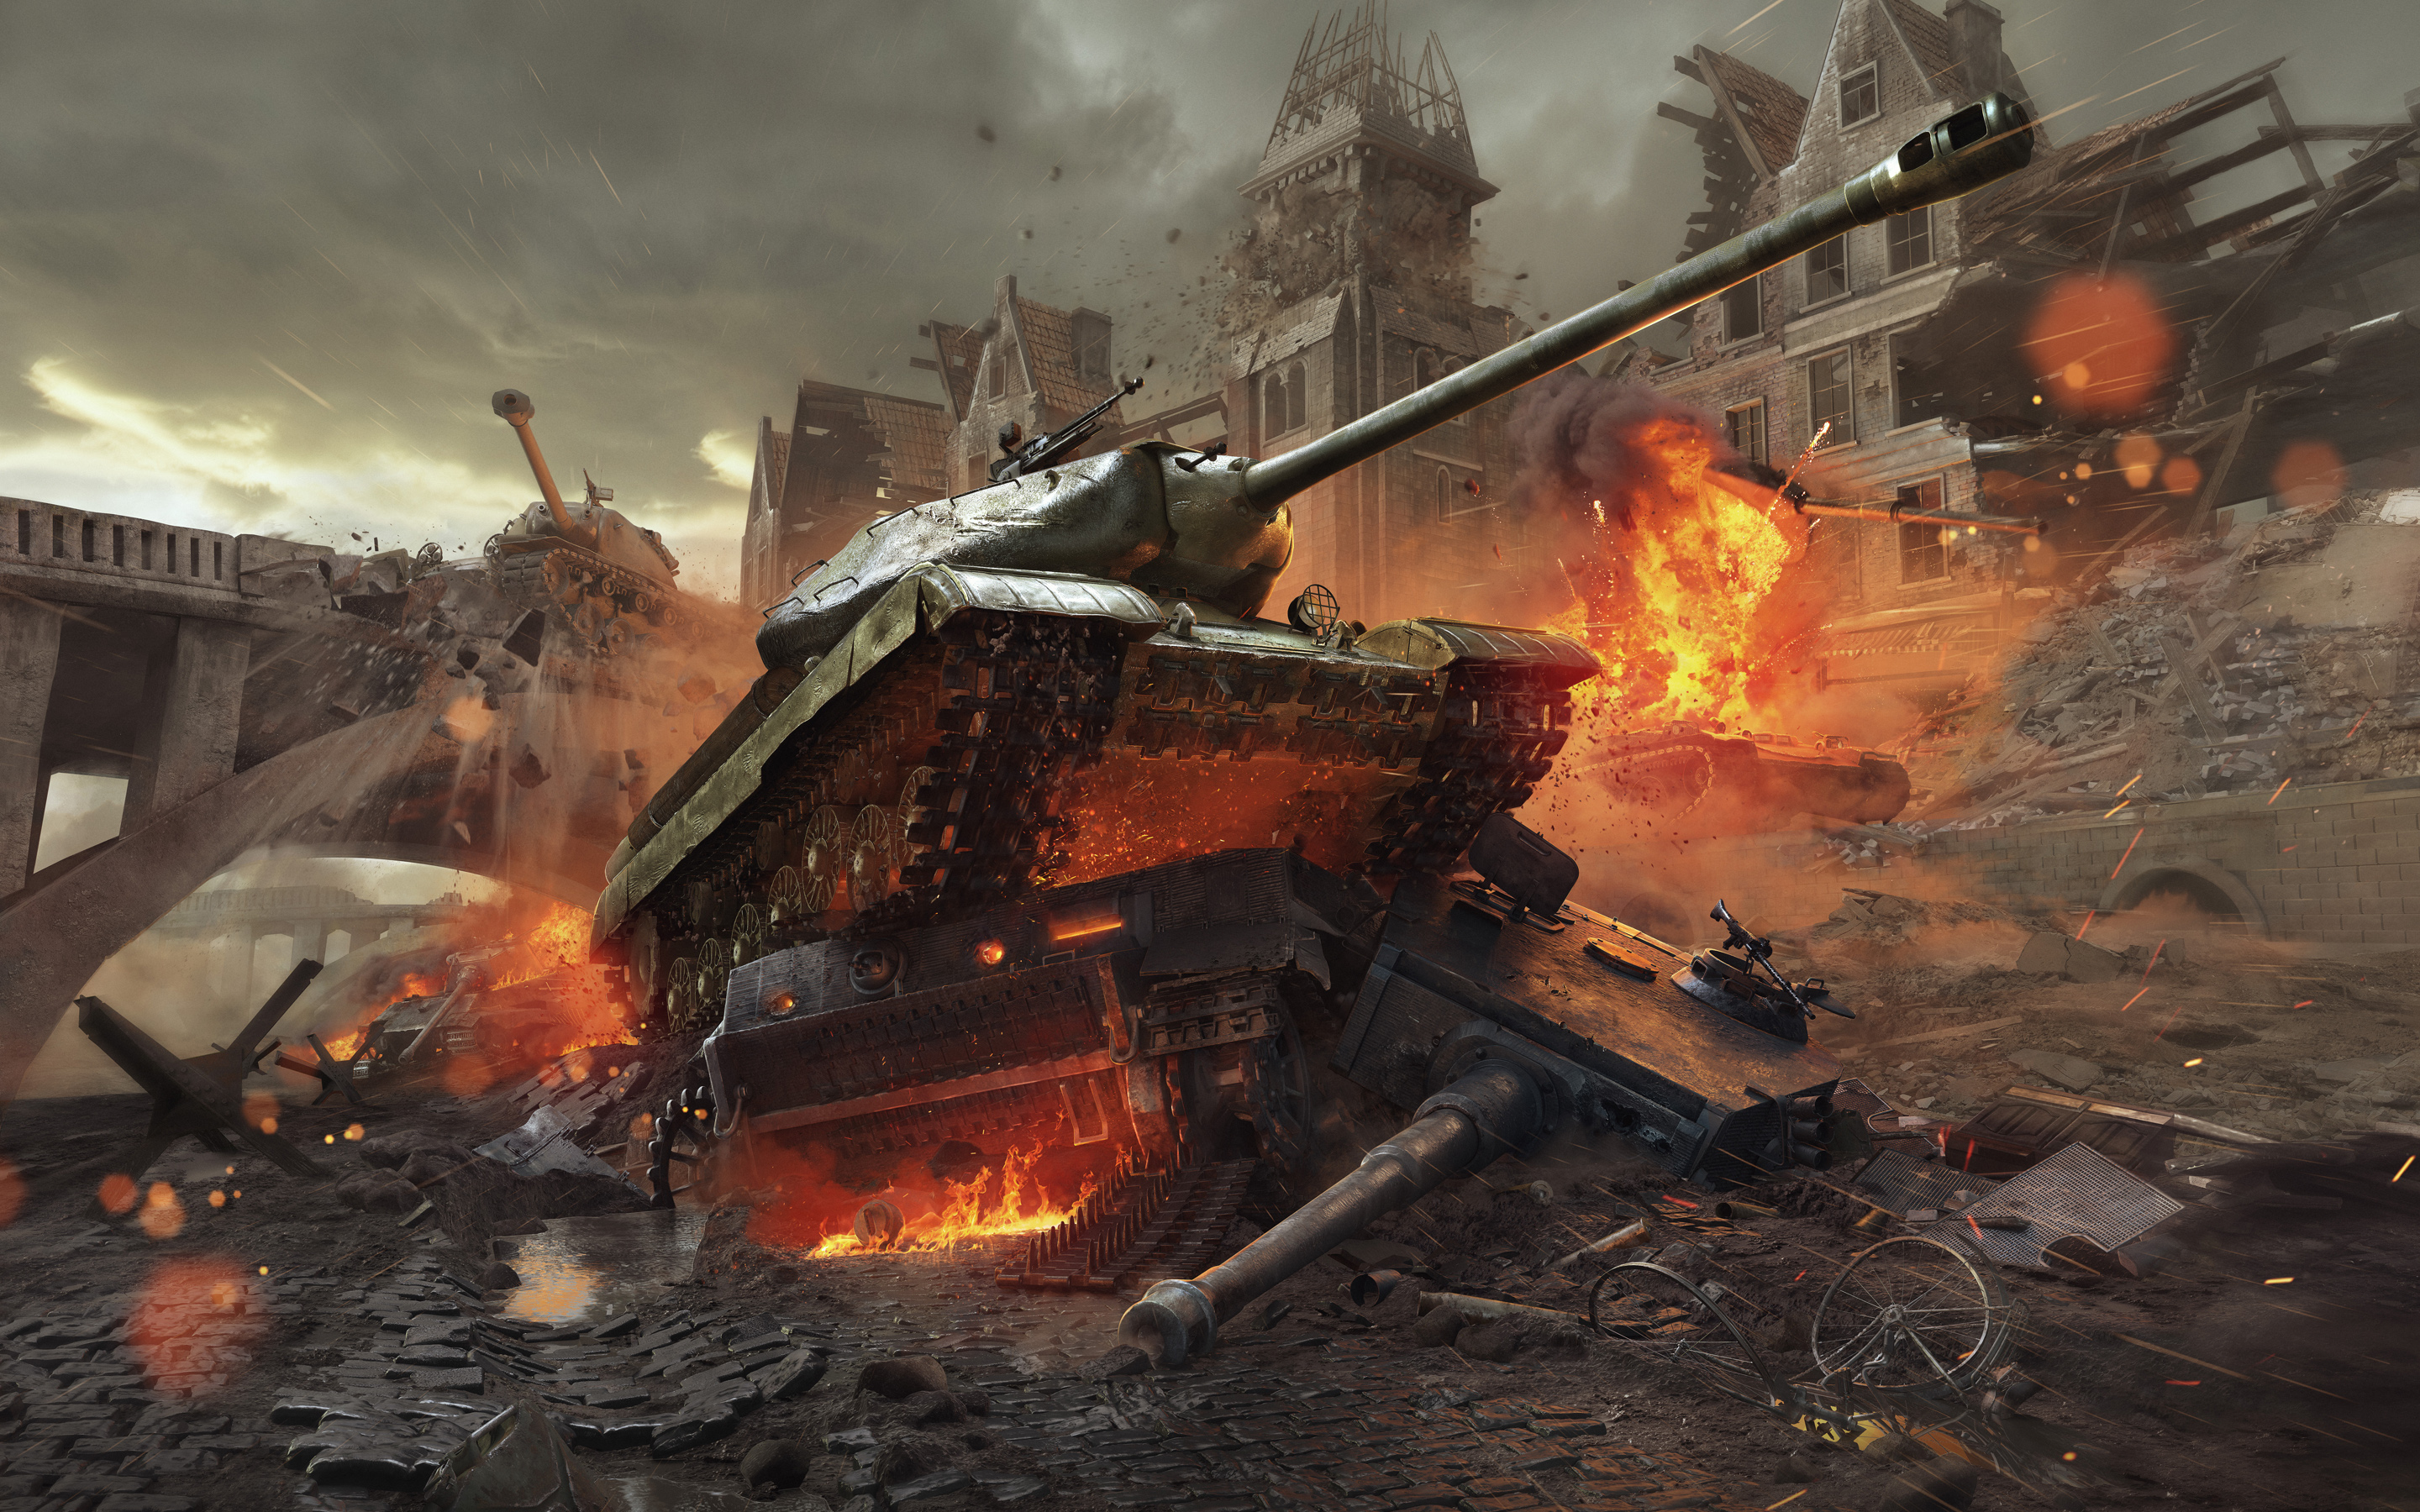 HD Wallpapers World of Tanks New Frontiers